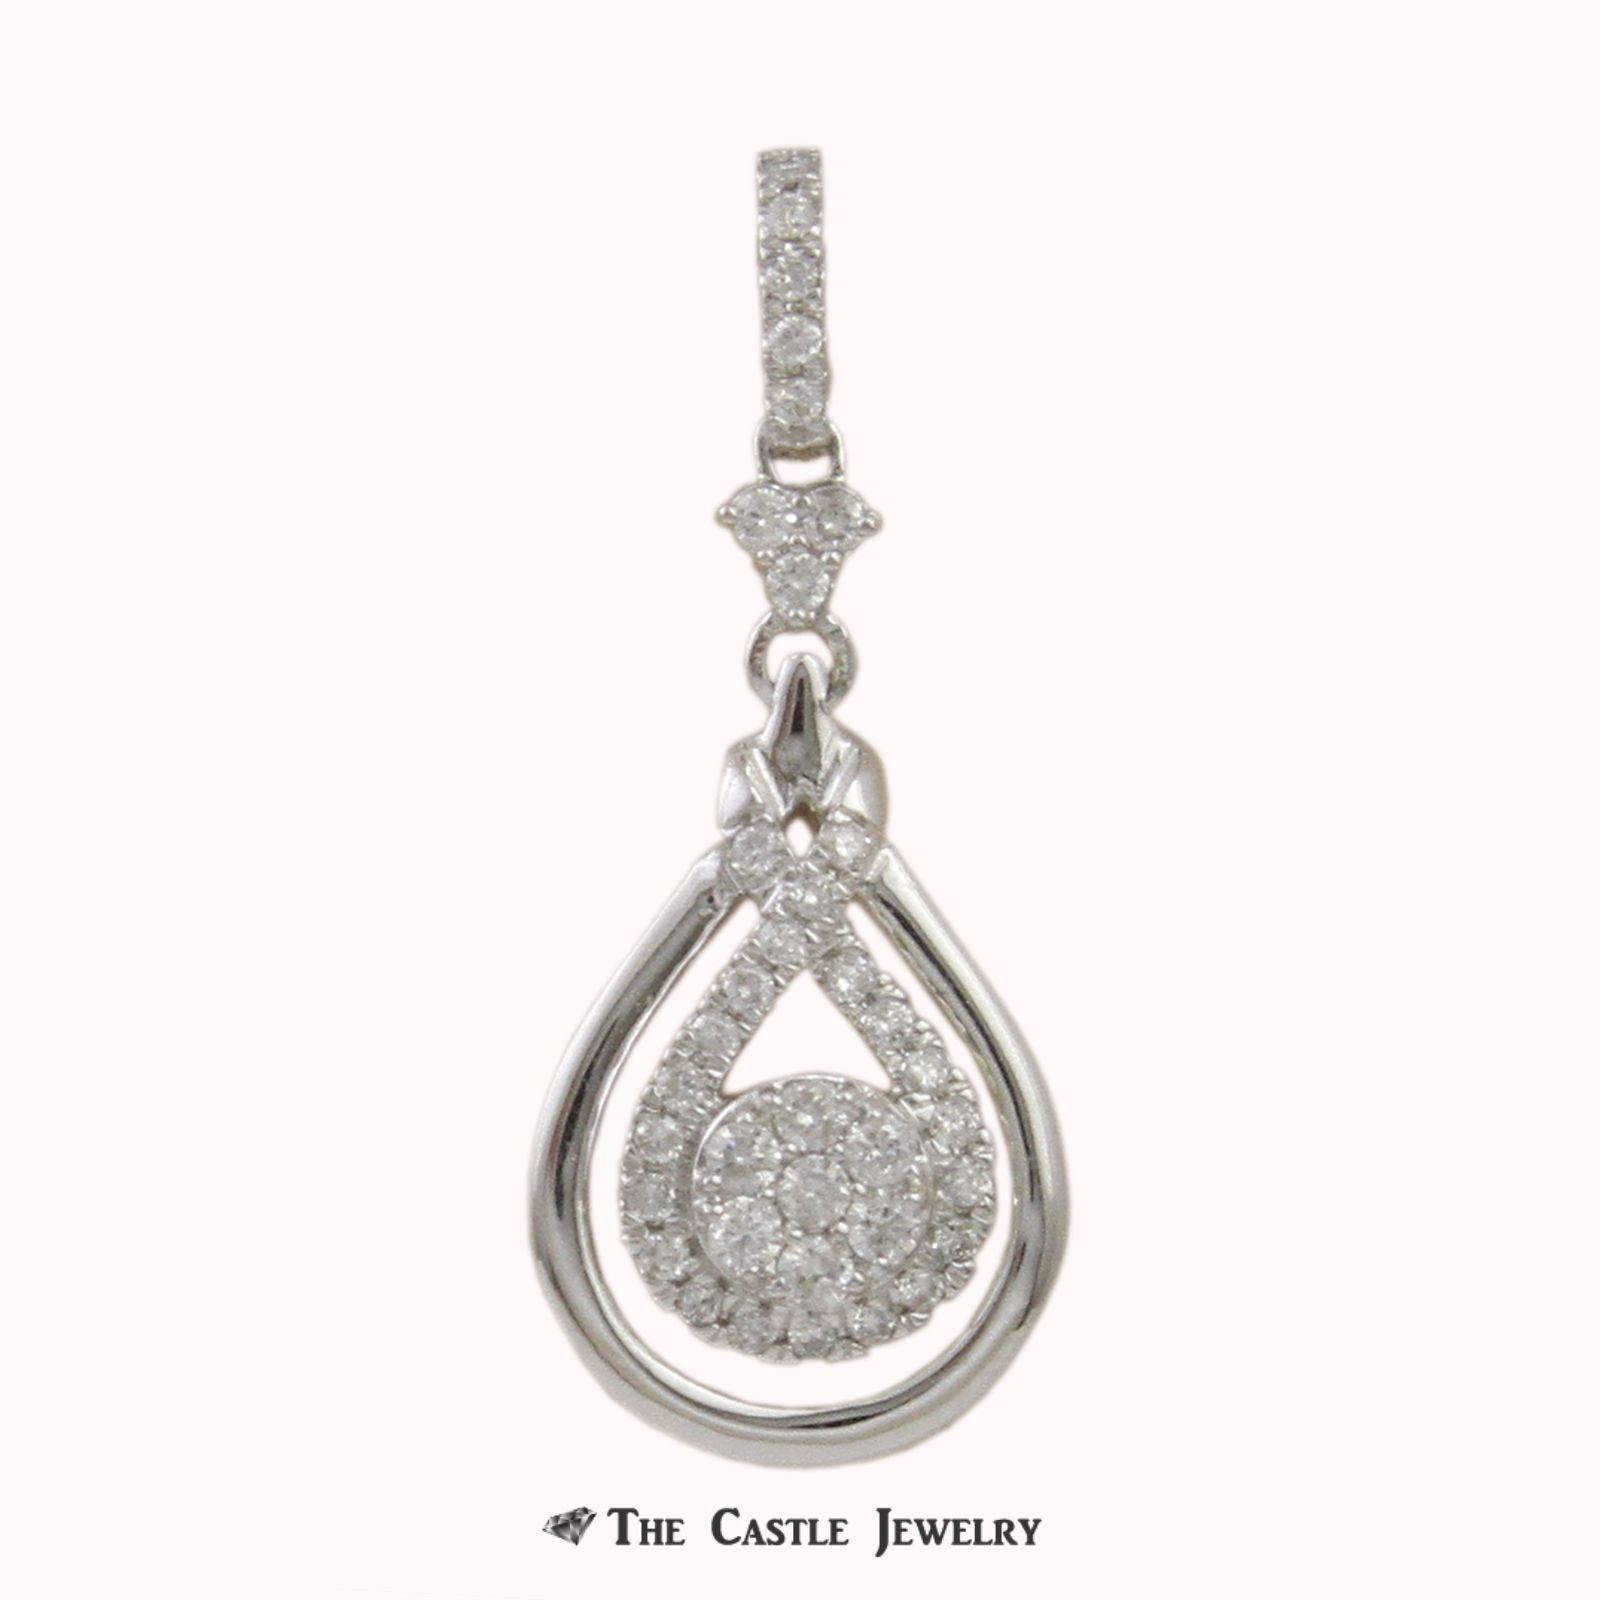 SPECIAL! 1/3cttw Double Looped Interlove Infinity Pendant w/ Cluster Center in White Gold